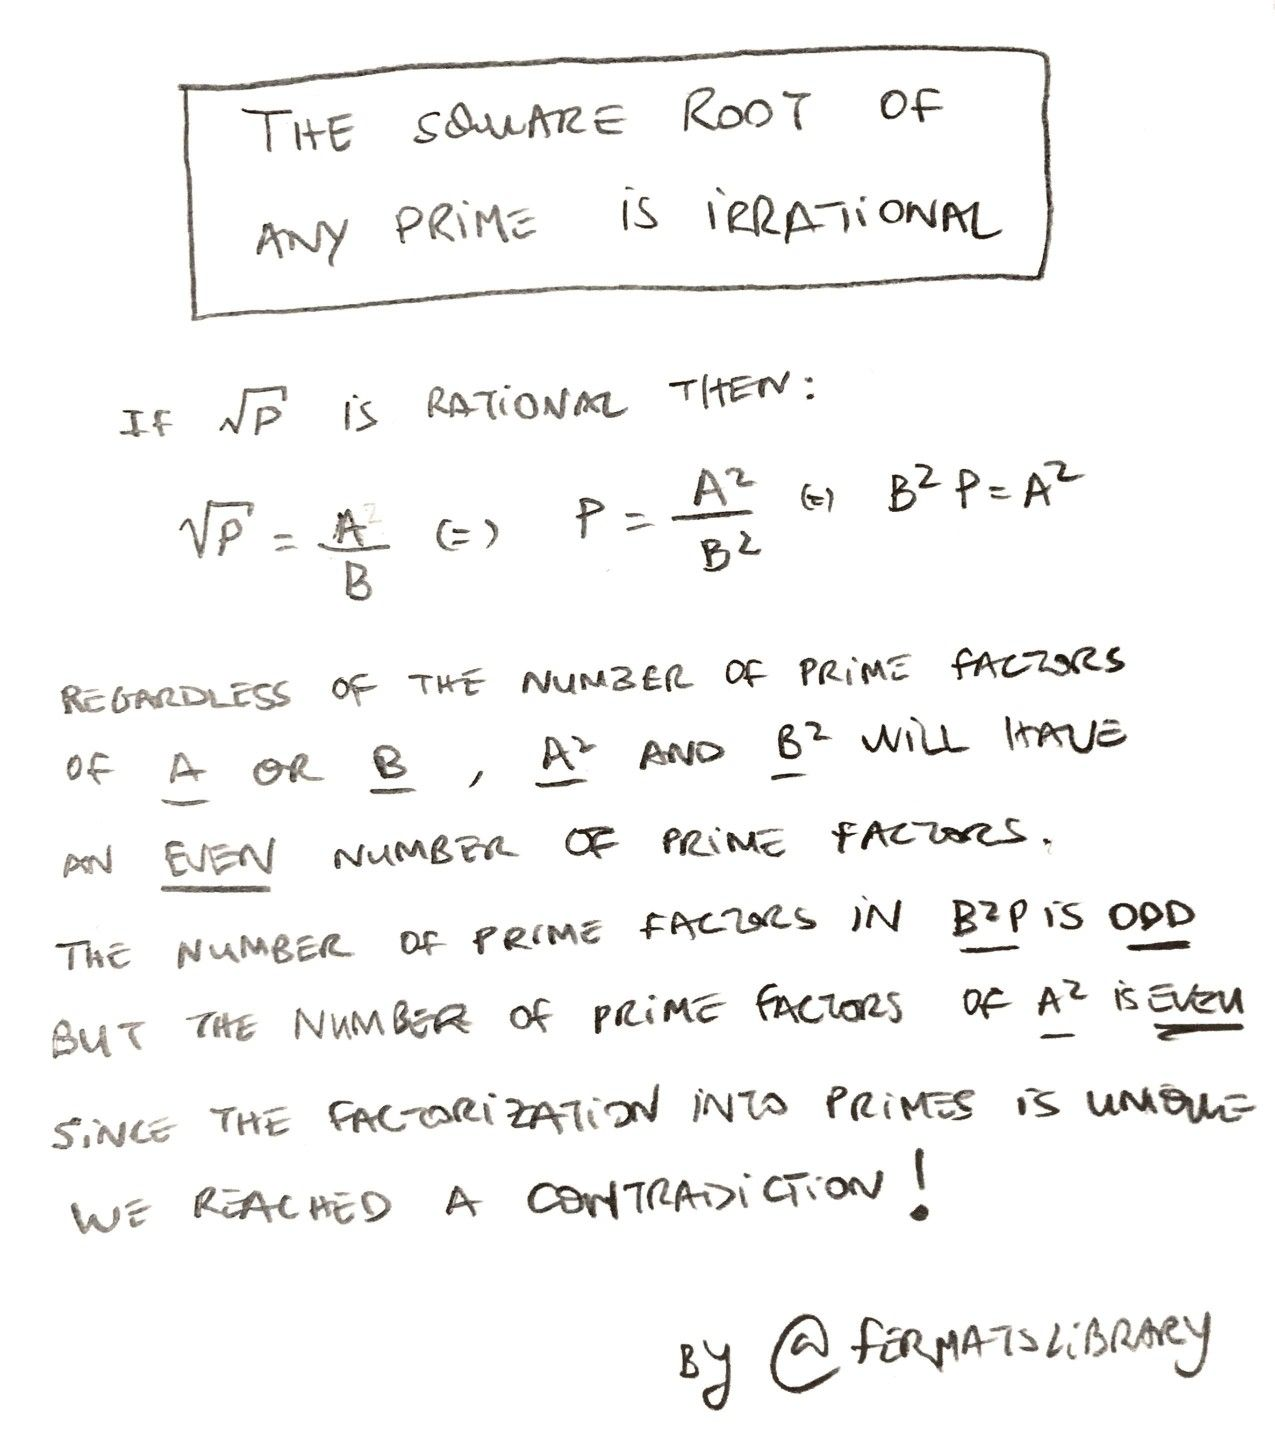 The Square Root Of Any Prime Is Irrational